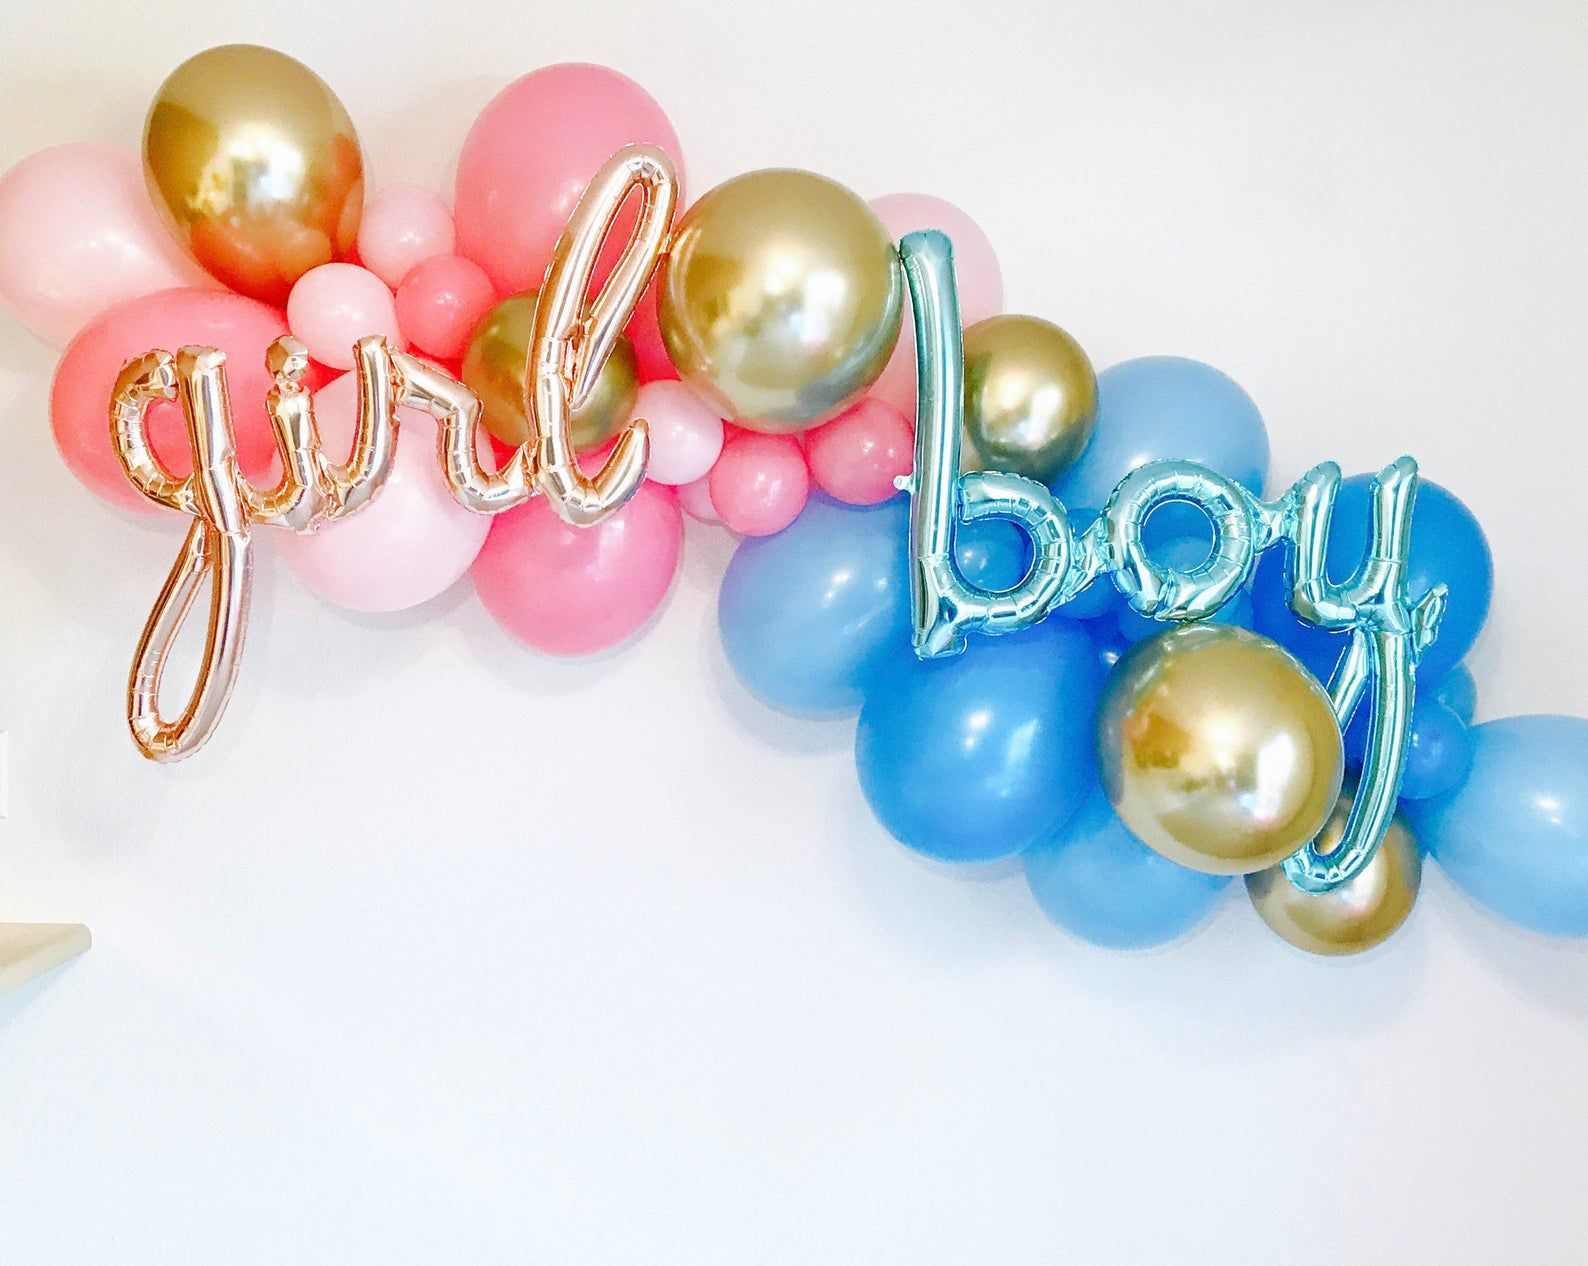 Gender Reveal Balloons, Baby Reveal Shower, Gender Reveal Party, Gender Reveal Shower, Reveal Party, He or She, What will it Be Party,